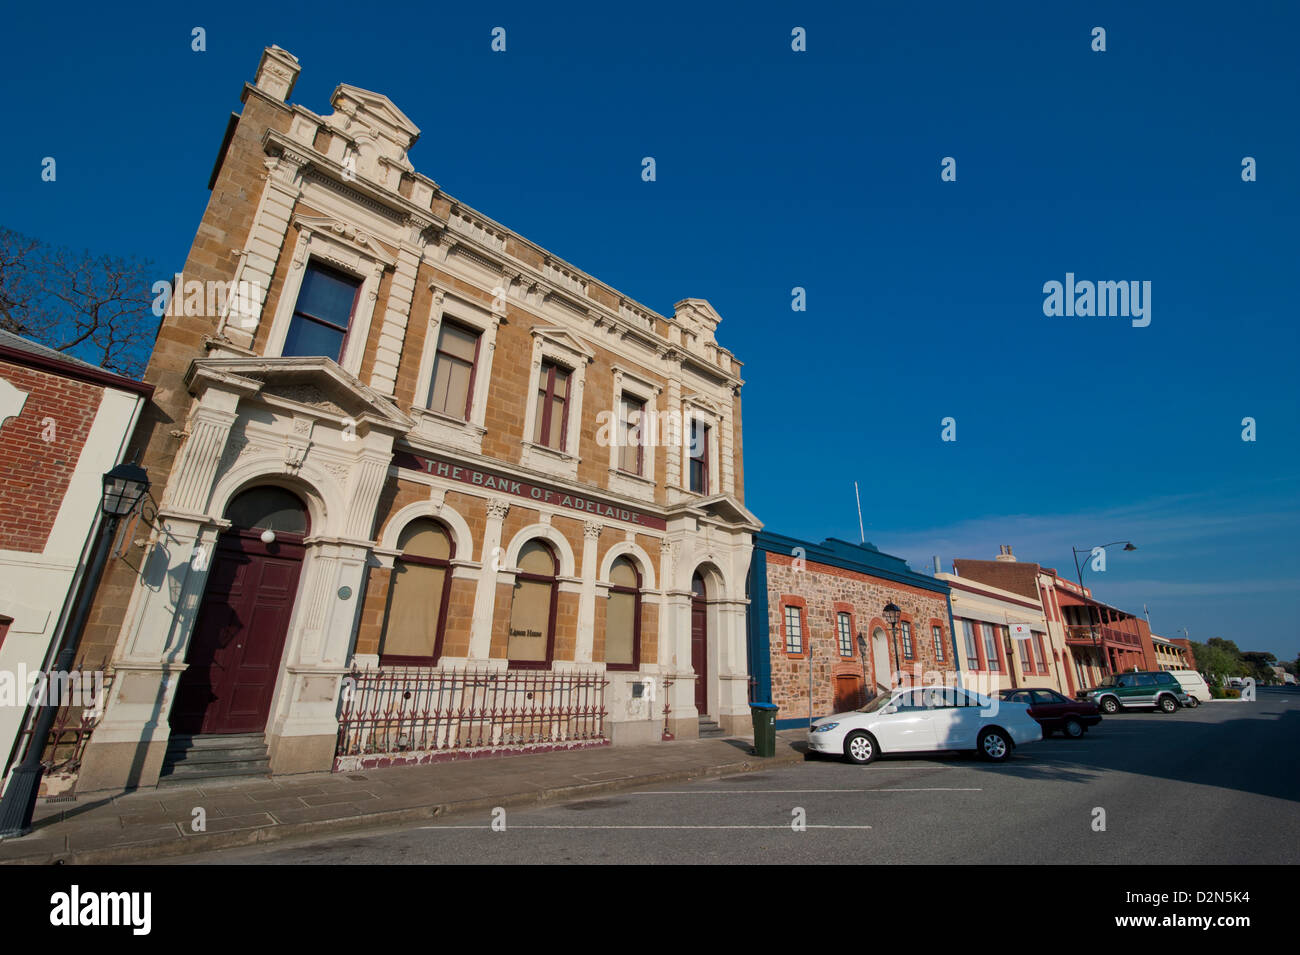 Kolonialarchitektur in Port Adelaide, South Australia, Australien, Pazifik Stockfoto